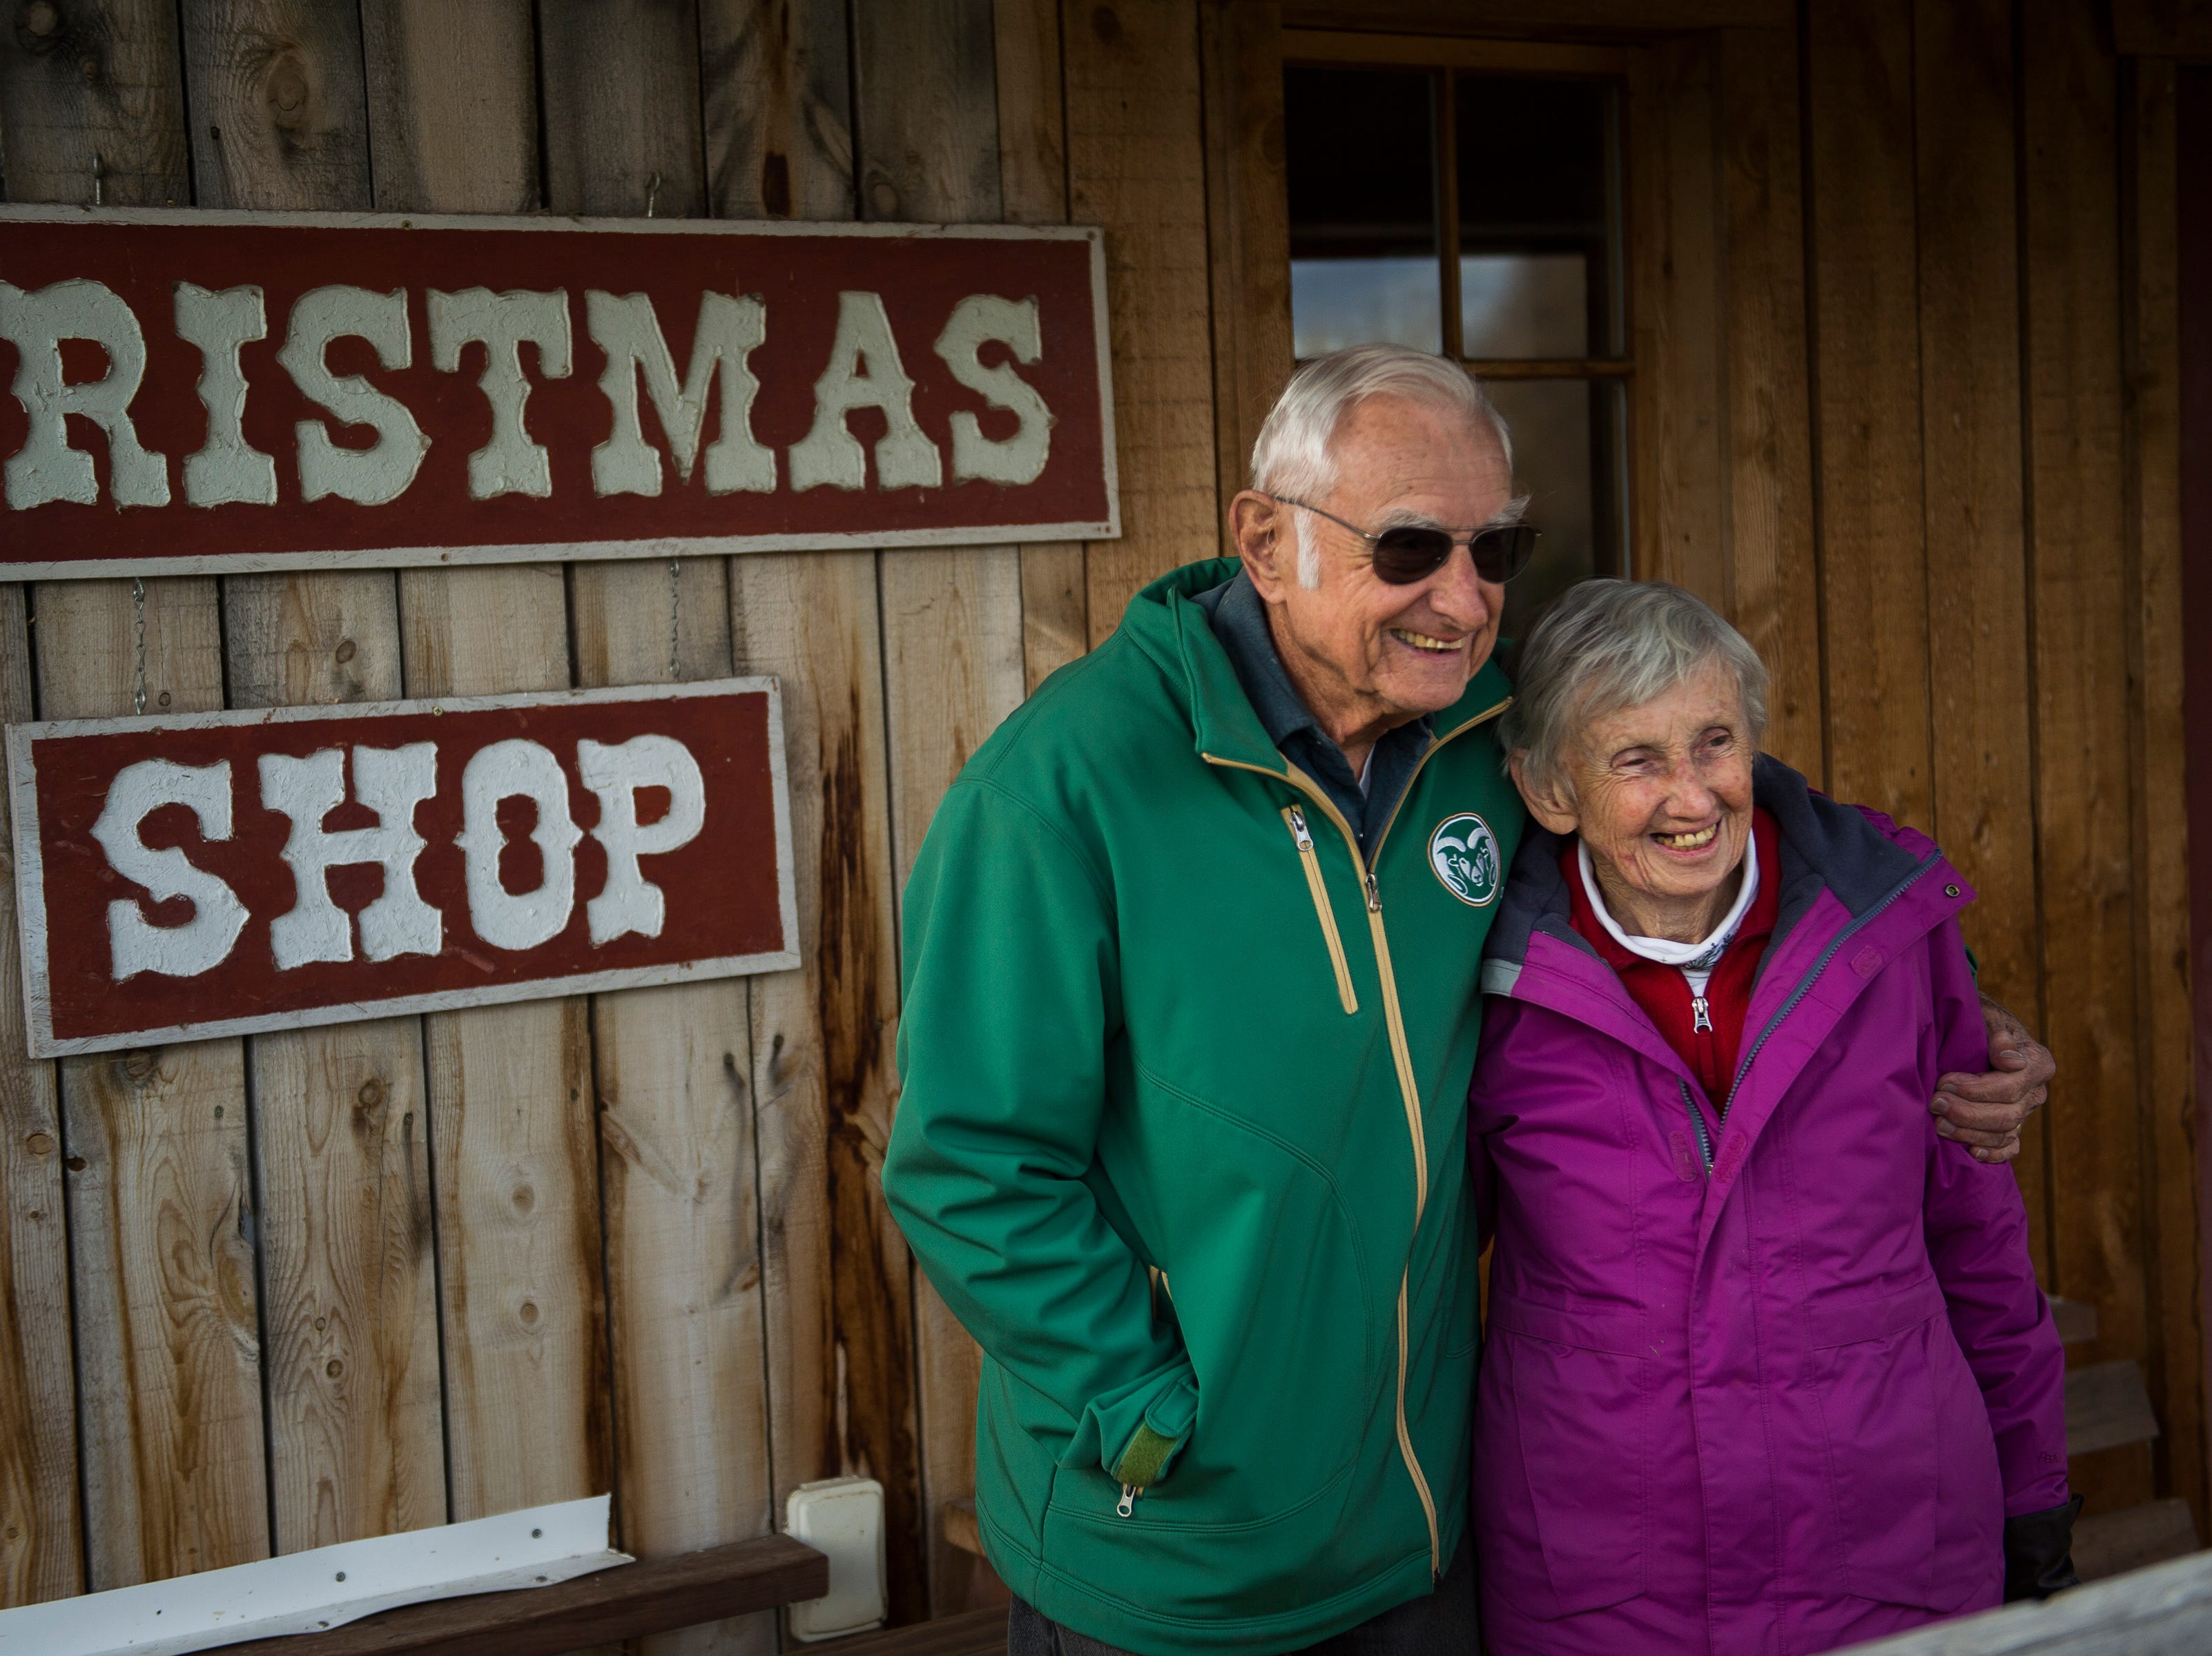 John and Janice Windsor pose for a portrait on Friday, Nov. 16, 2018, at Windsors' Christmas Trees in Windsor, Colo.